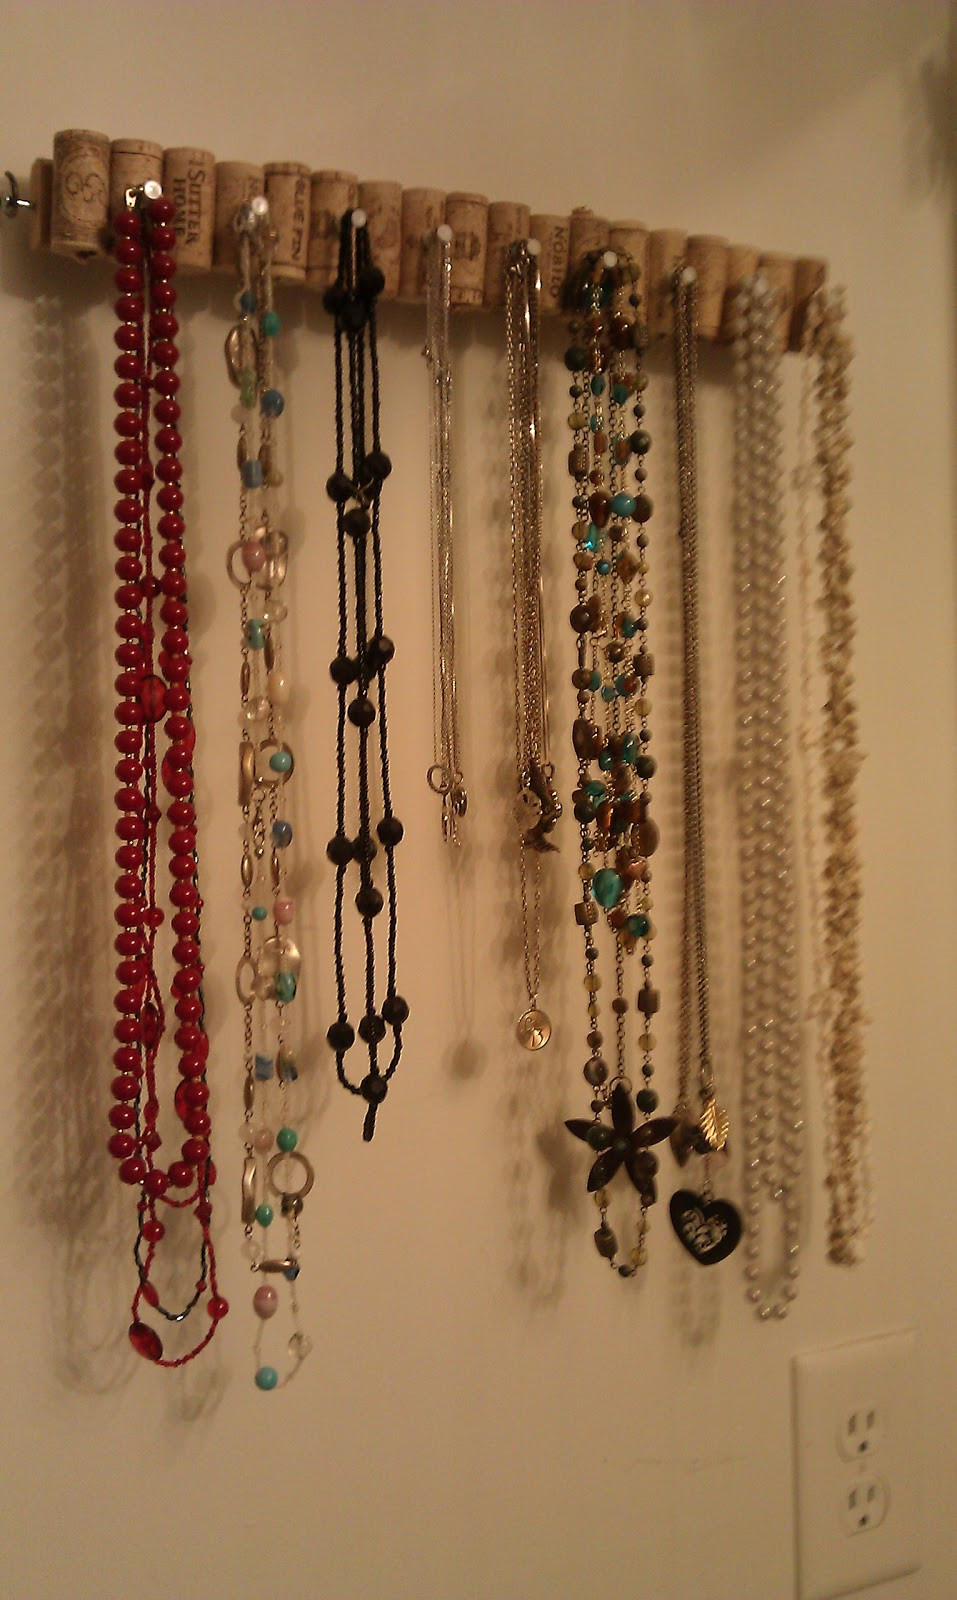 Best ideas about DIY Necklace Organizer . Save or Pin The Wannabe Hippie DIY Necklace holder Now.